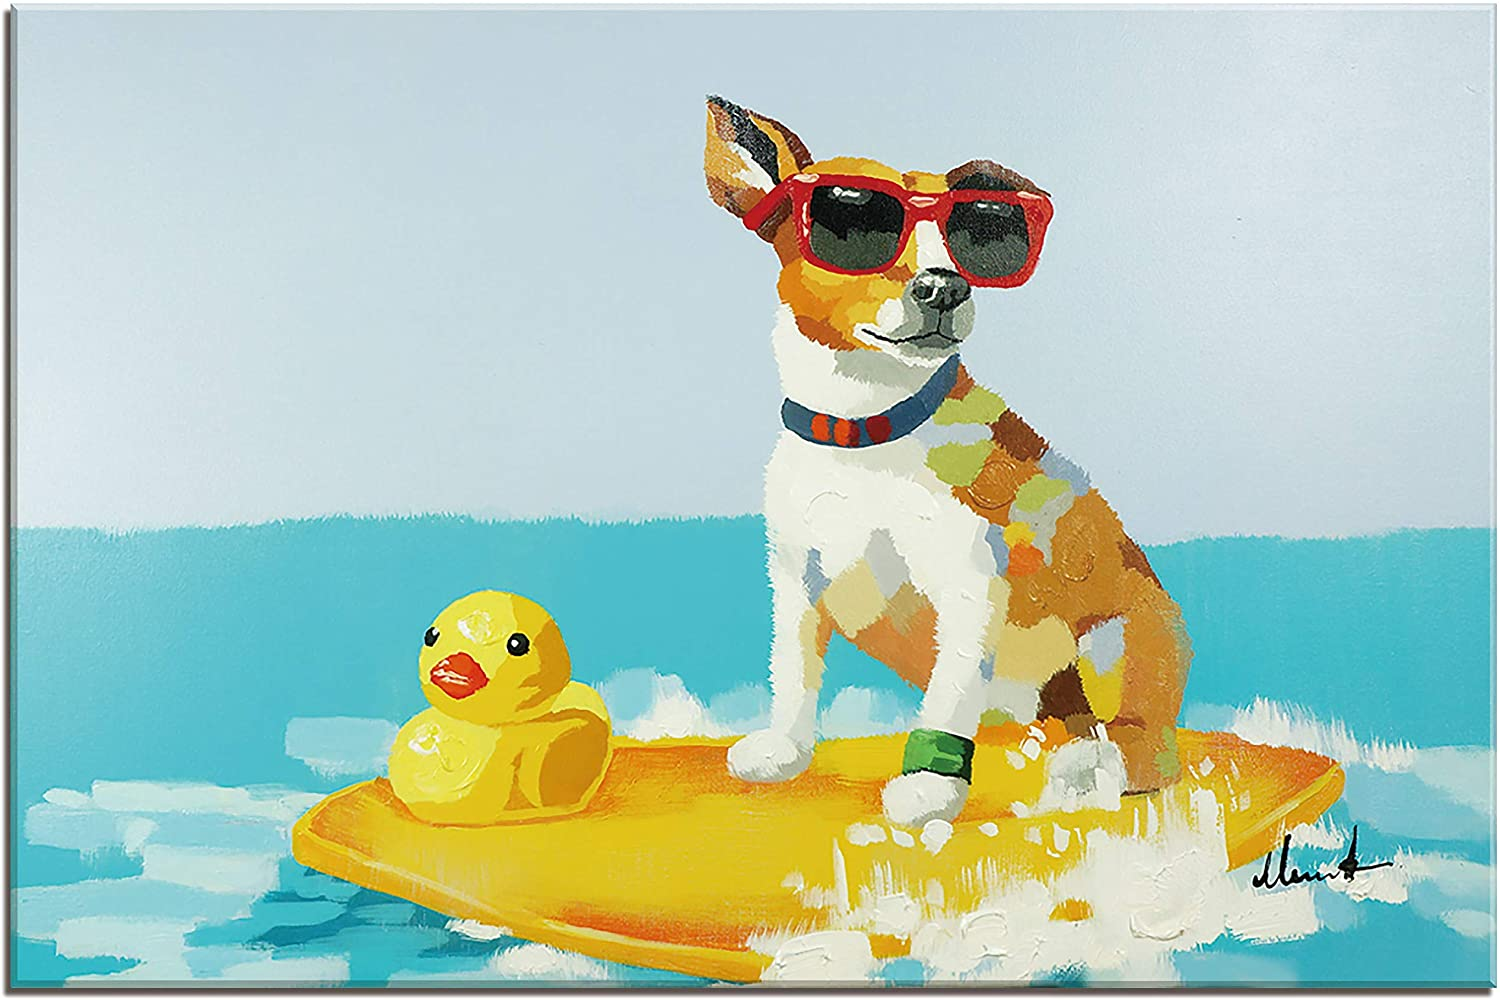 Bignut Wall Art 100% Hand Painted Beach Surfing Dog Picture Ocean Painting Funny Animal Canvas Ready to Hang 36x24in